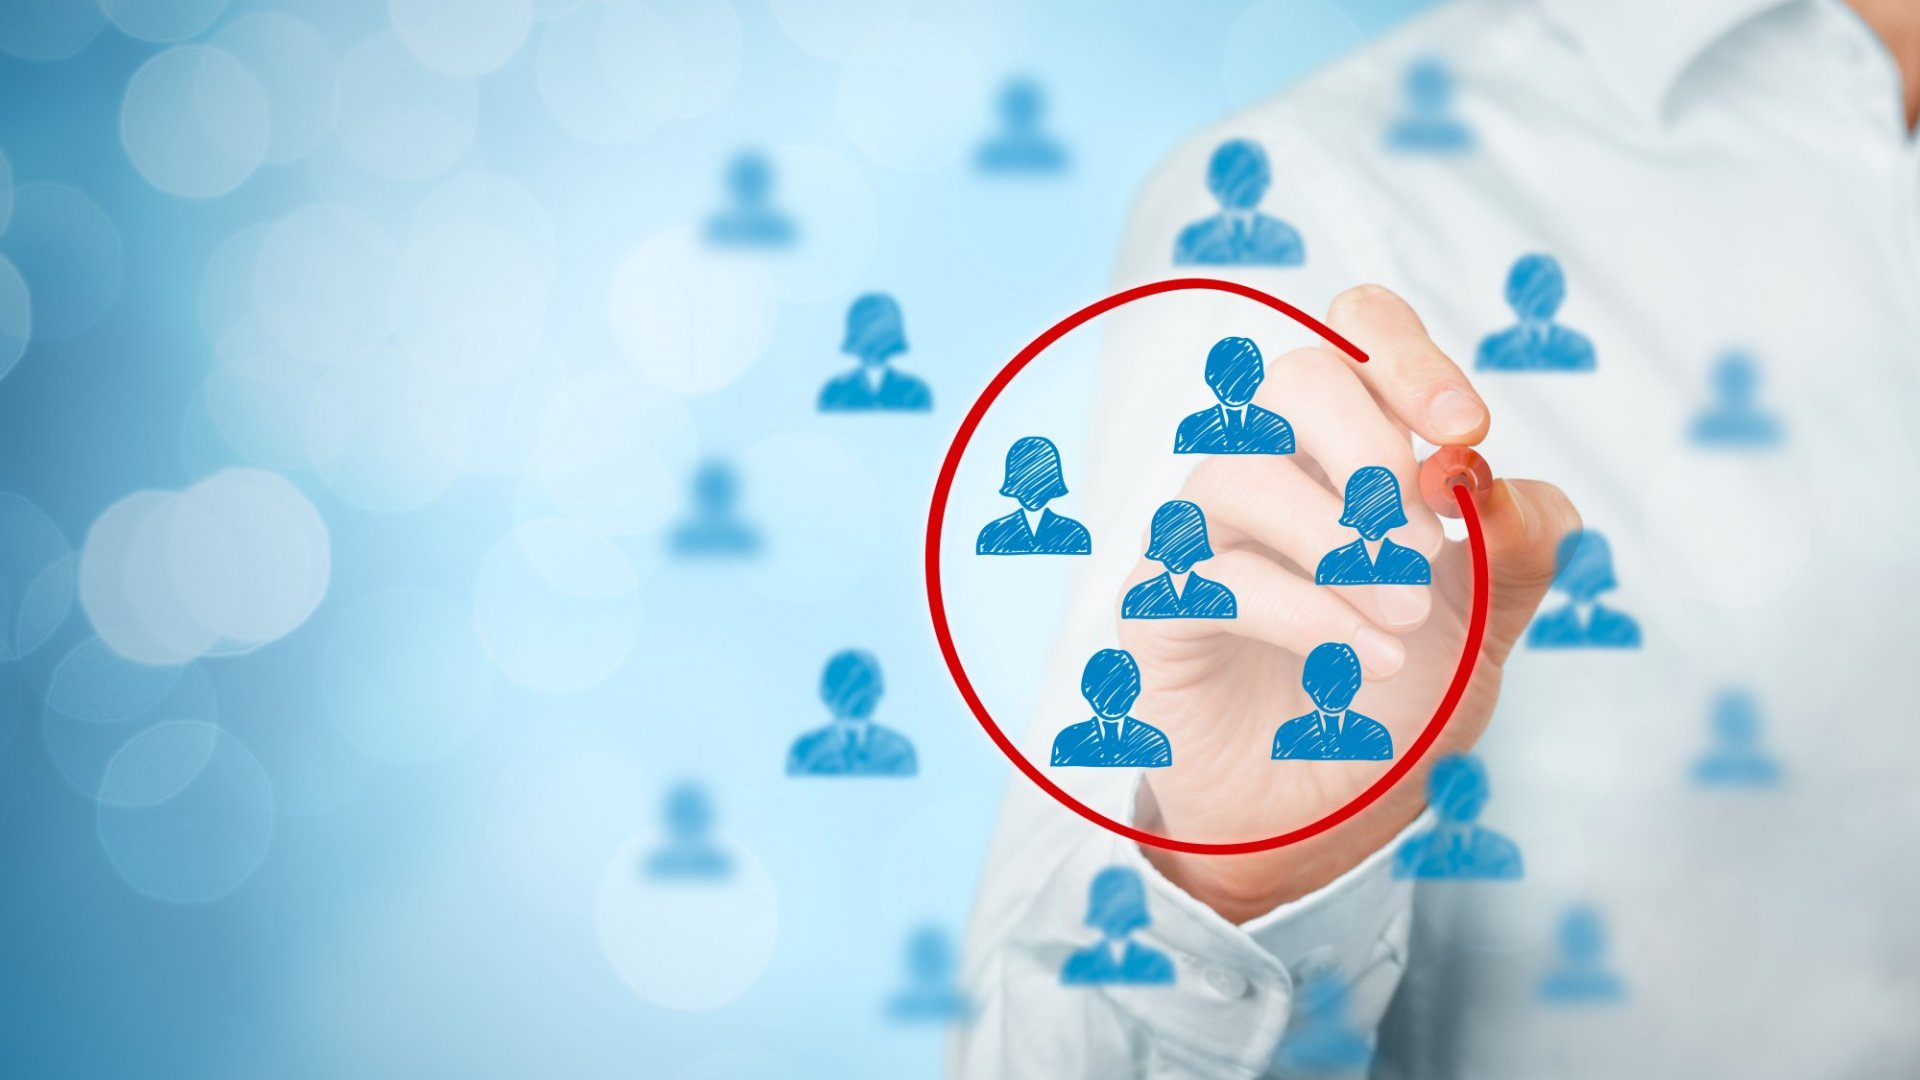 4 Moves Smart Leaders Make When Hiring in a Tight Labor Market